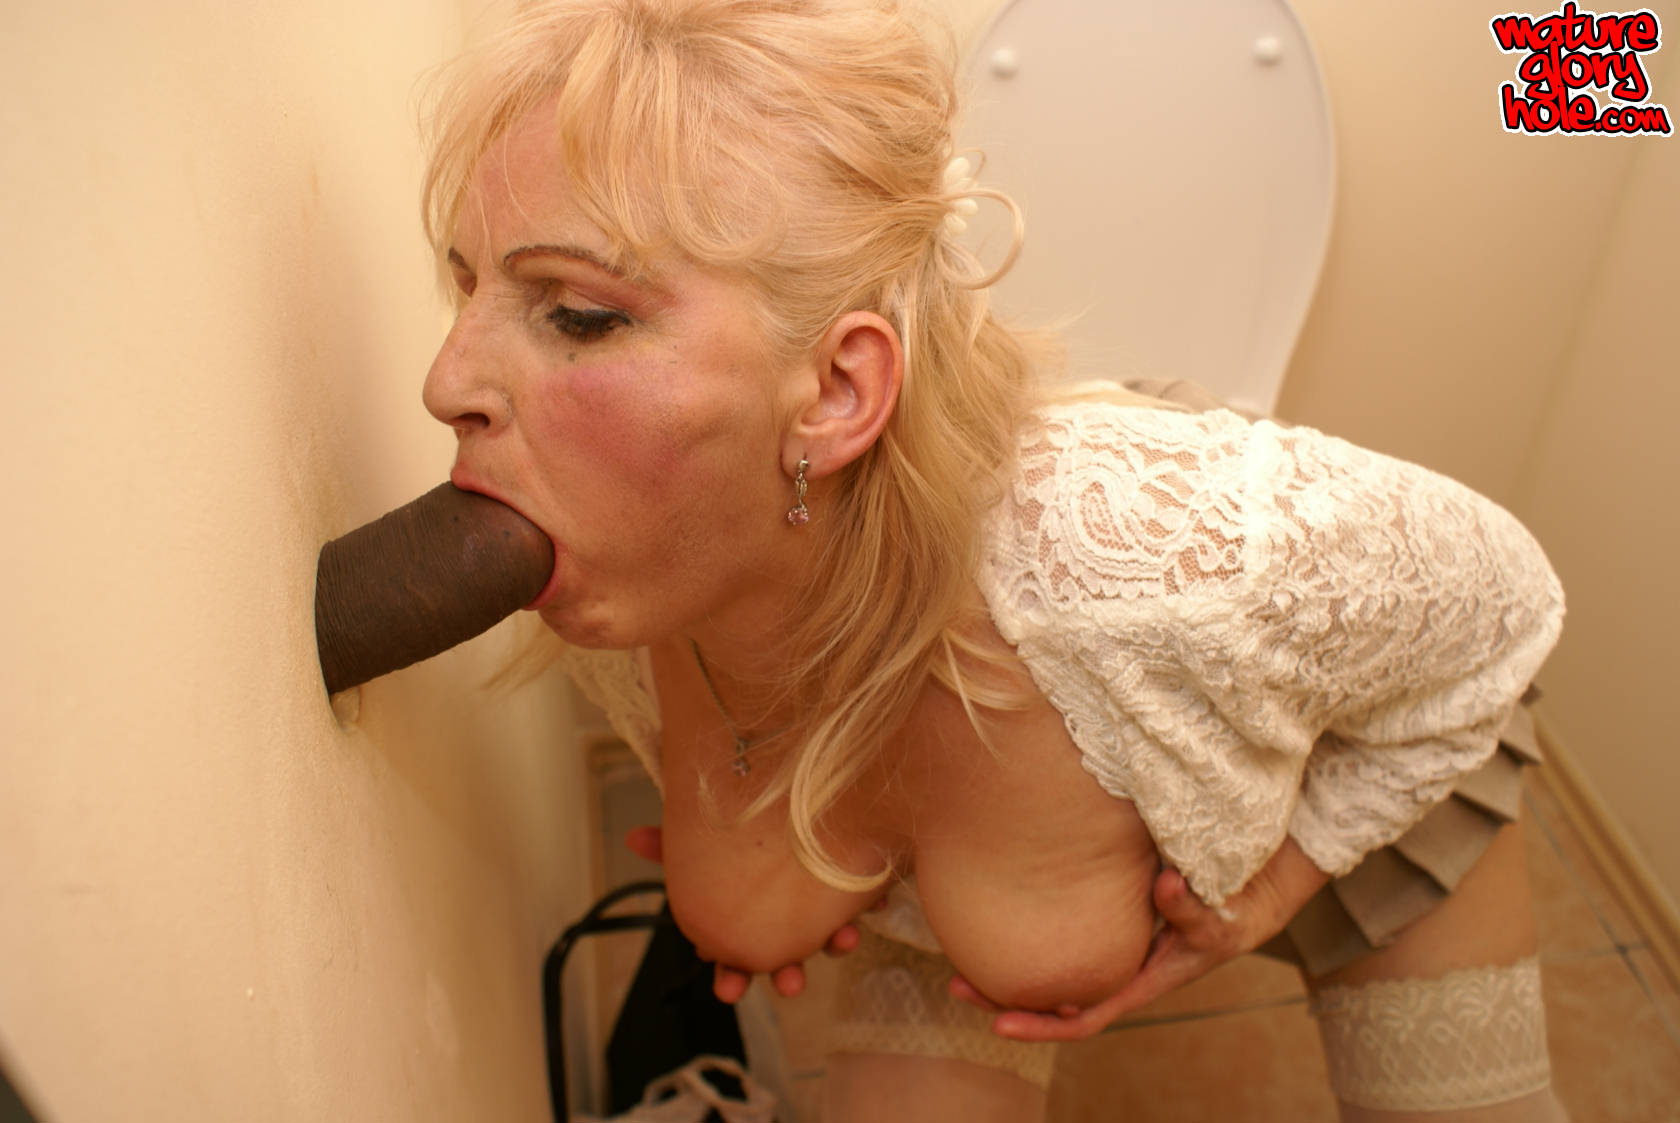 glory hole porno mature video